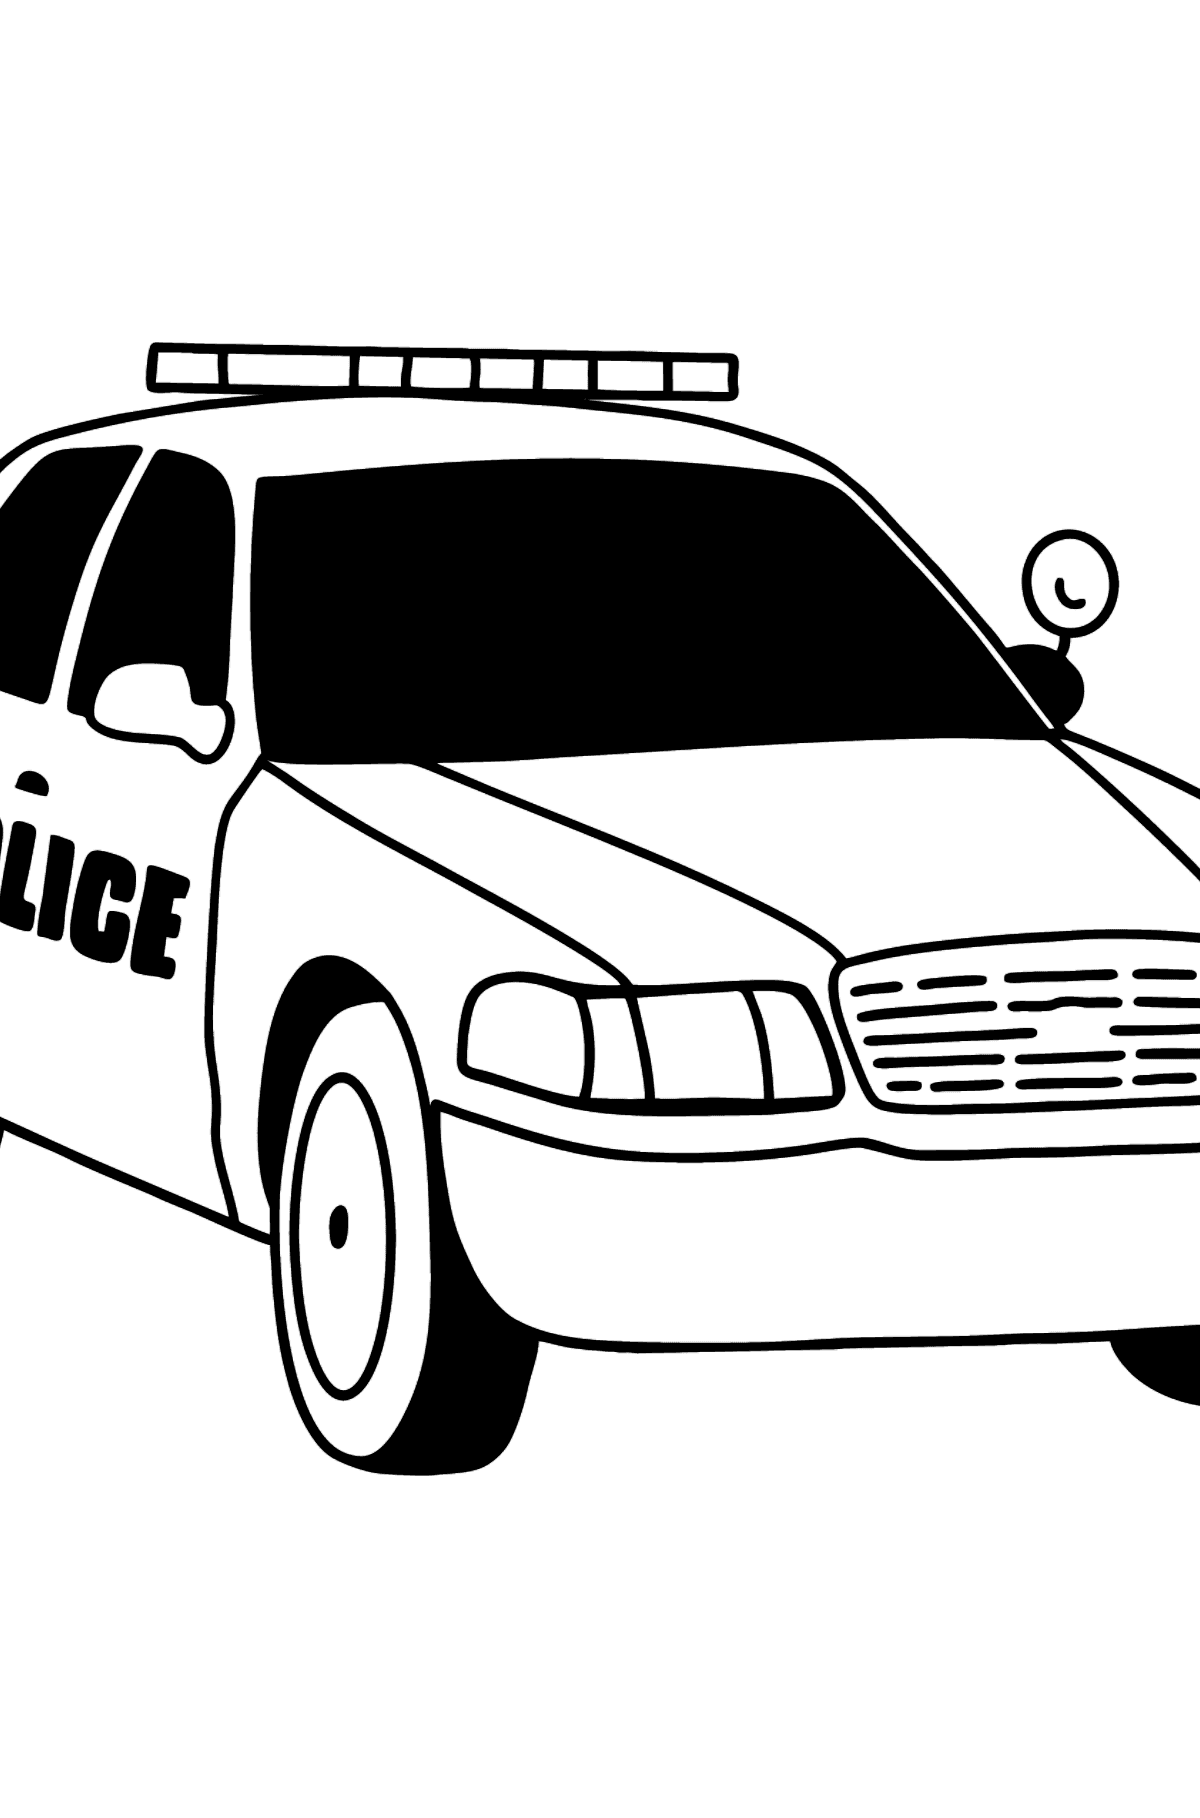 US Police Car coloring page - Coloring Pages for Kids